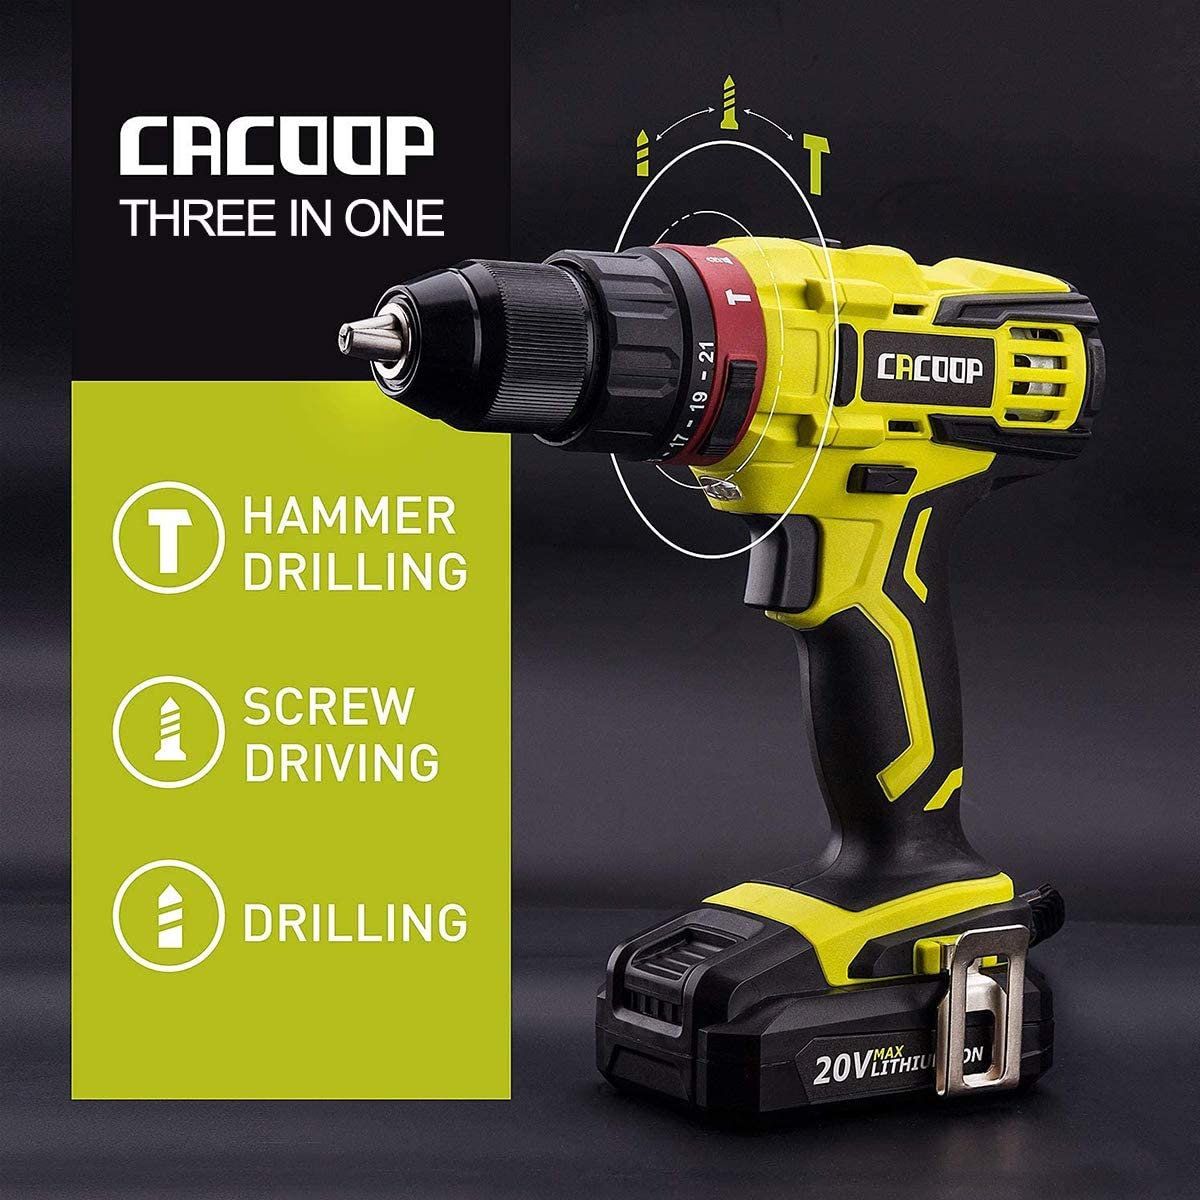 B07C1MGKSX CACOOP 20v cordless hammer drill set with battery and charger,442lbs/50nm torque,21+1 position,2Ah battery,1/2 keyless chuck,1H Fast charger,Variable Speed for concrete wood brick metal 71Z80P2CAQL.SL1200_